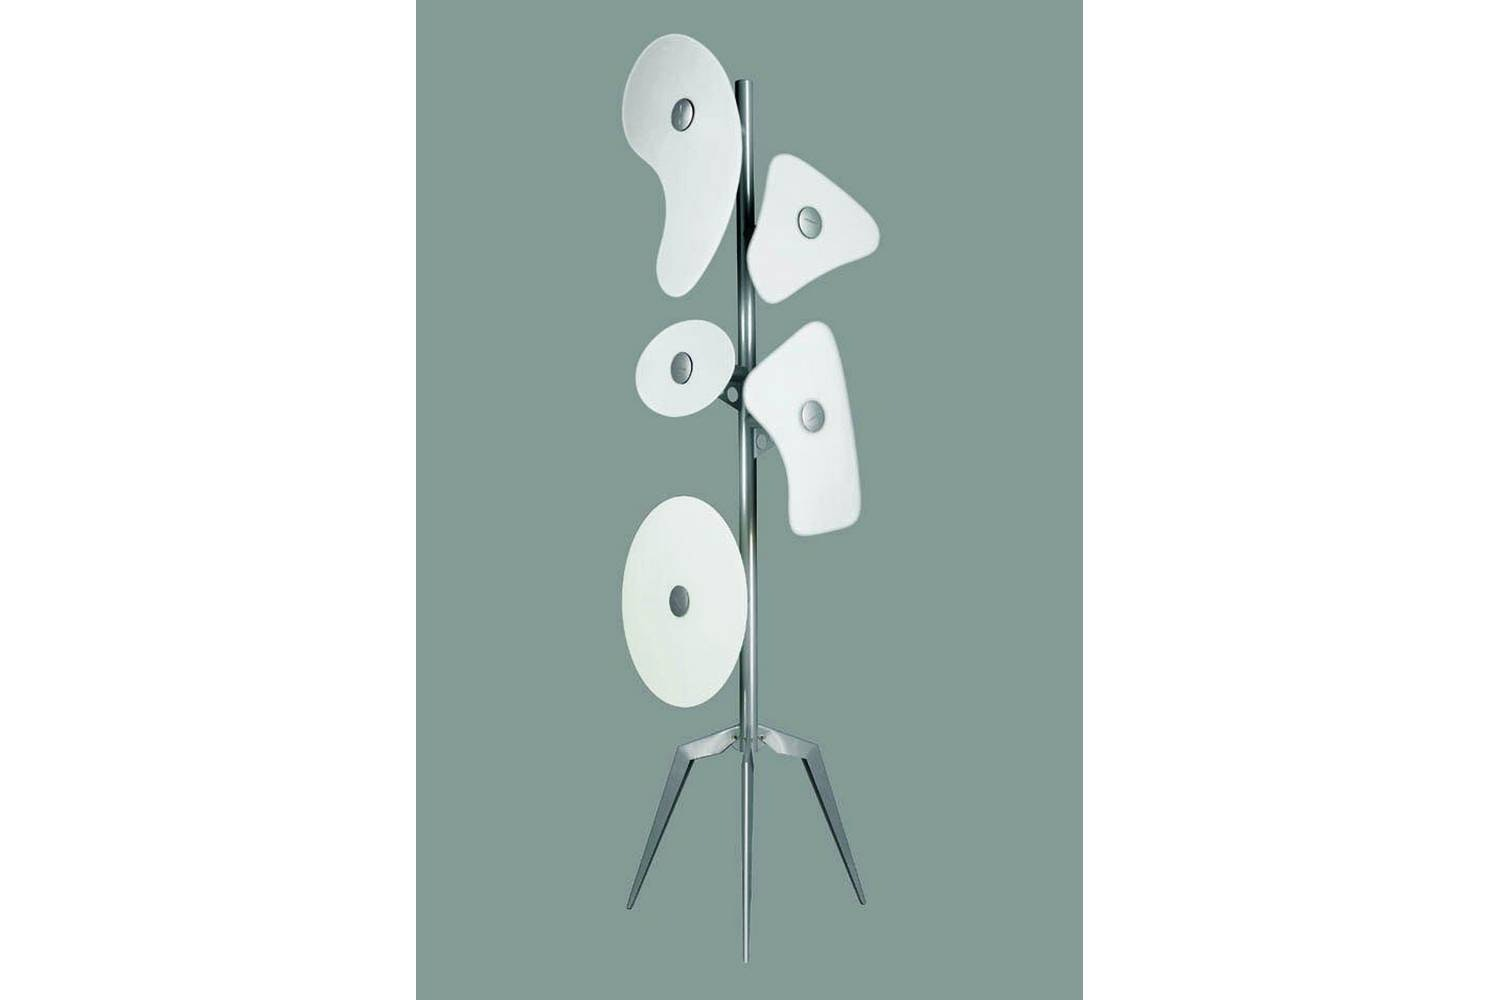 Orbital Floor Lamp by Ferruccio Laviani for Foscarini